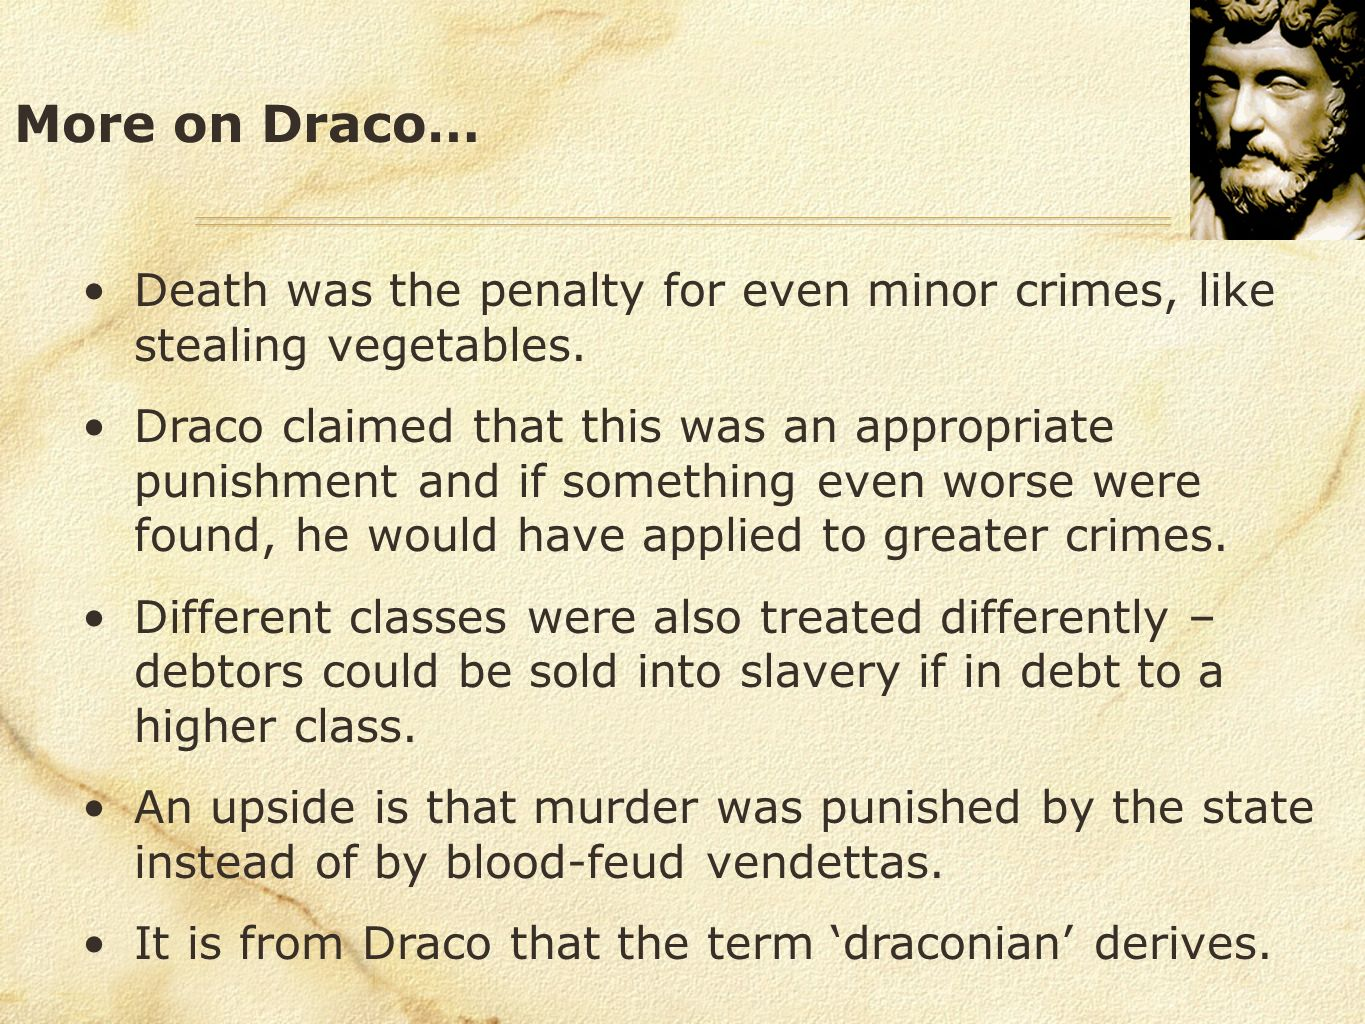 More on Draco… Death was the penalty for even minor crimes, like stealing vegetables.